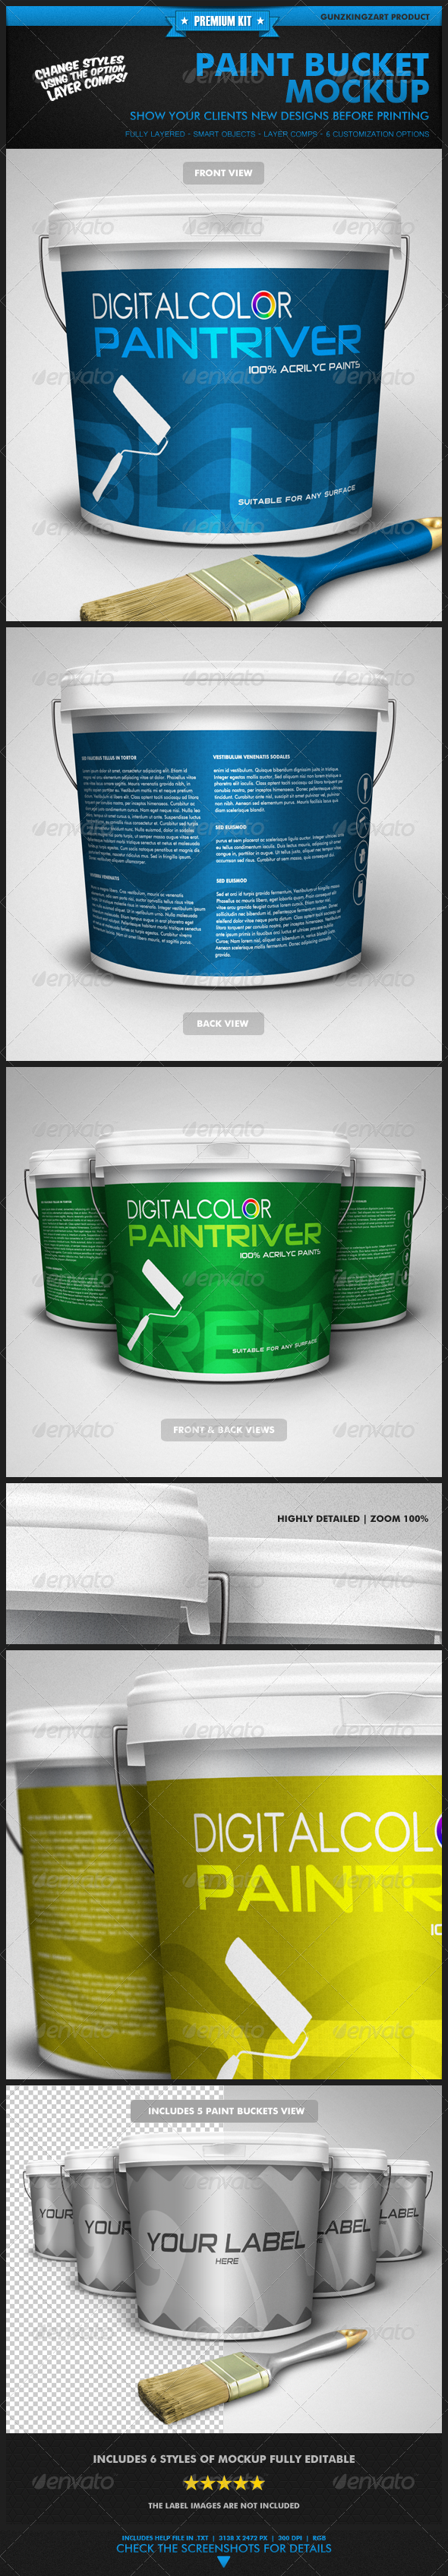 Paint Bucket Mockup - Premium Kit - Miscellaneous Packaging